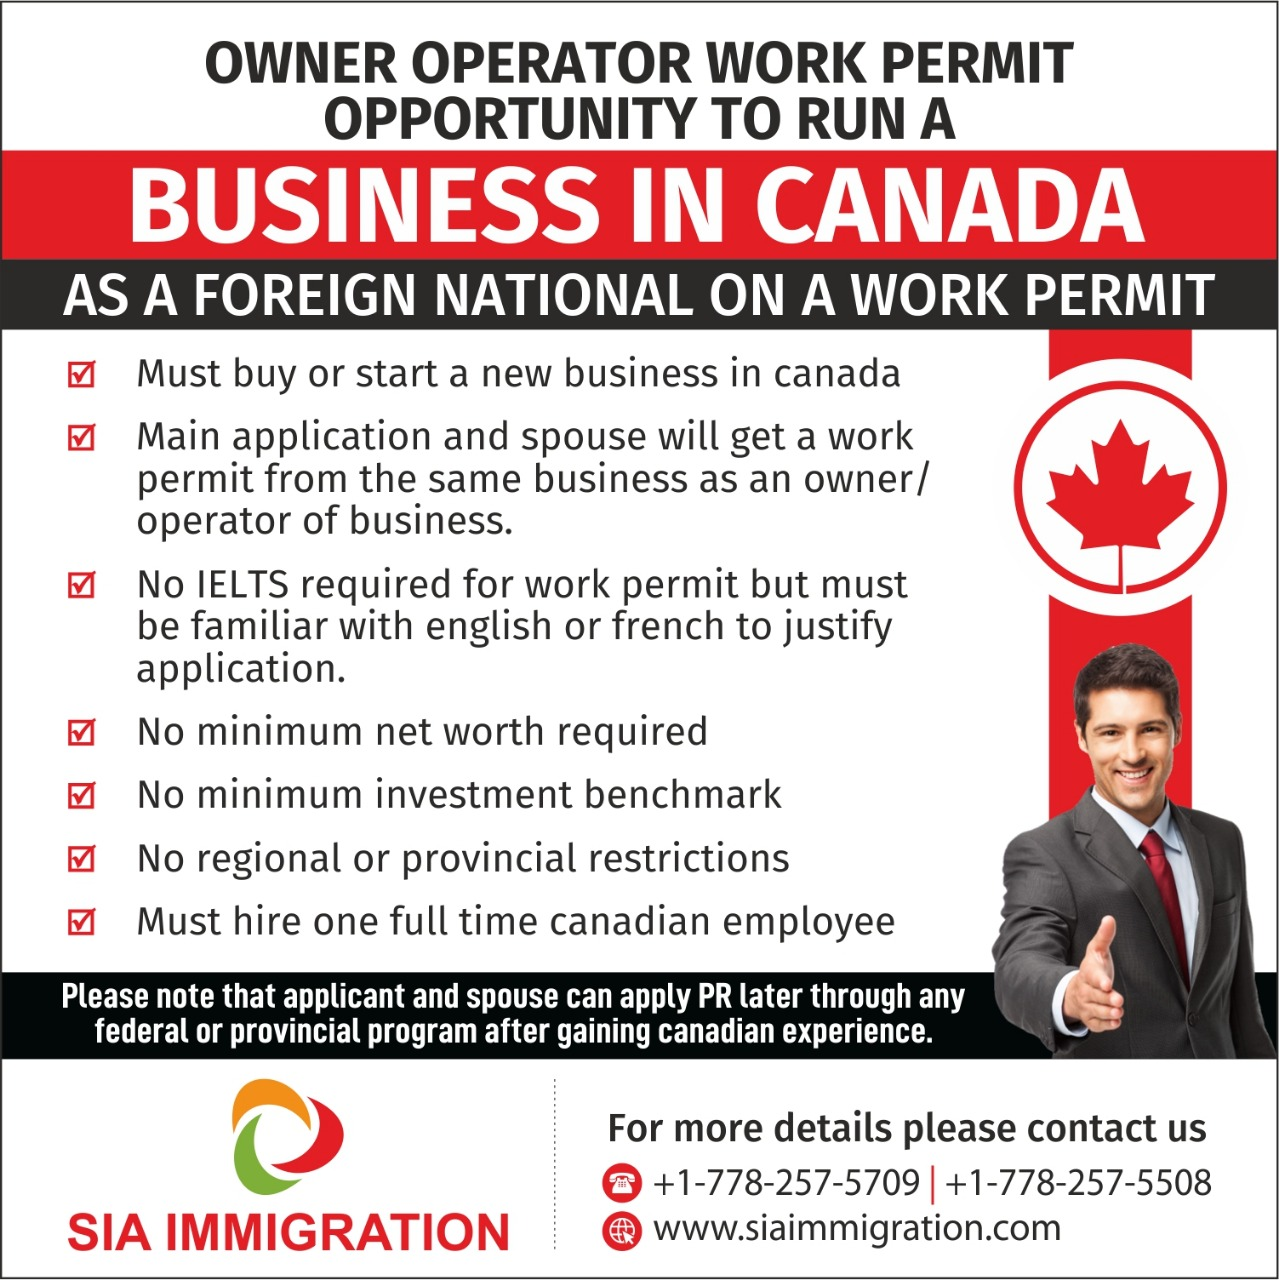 Sia Immigration Solutions Inc